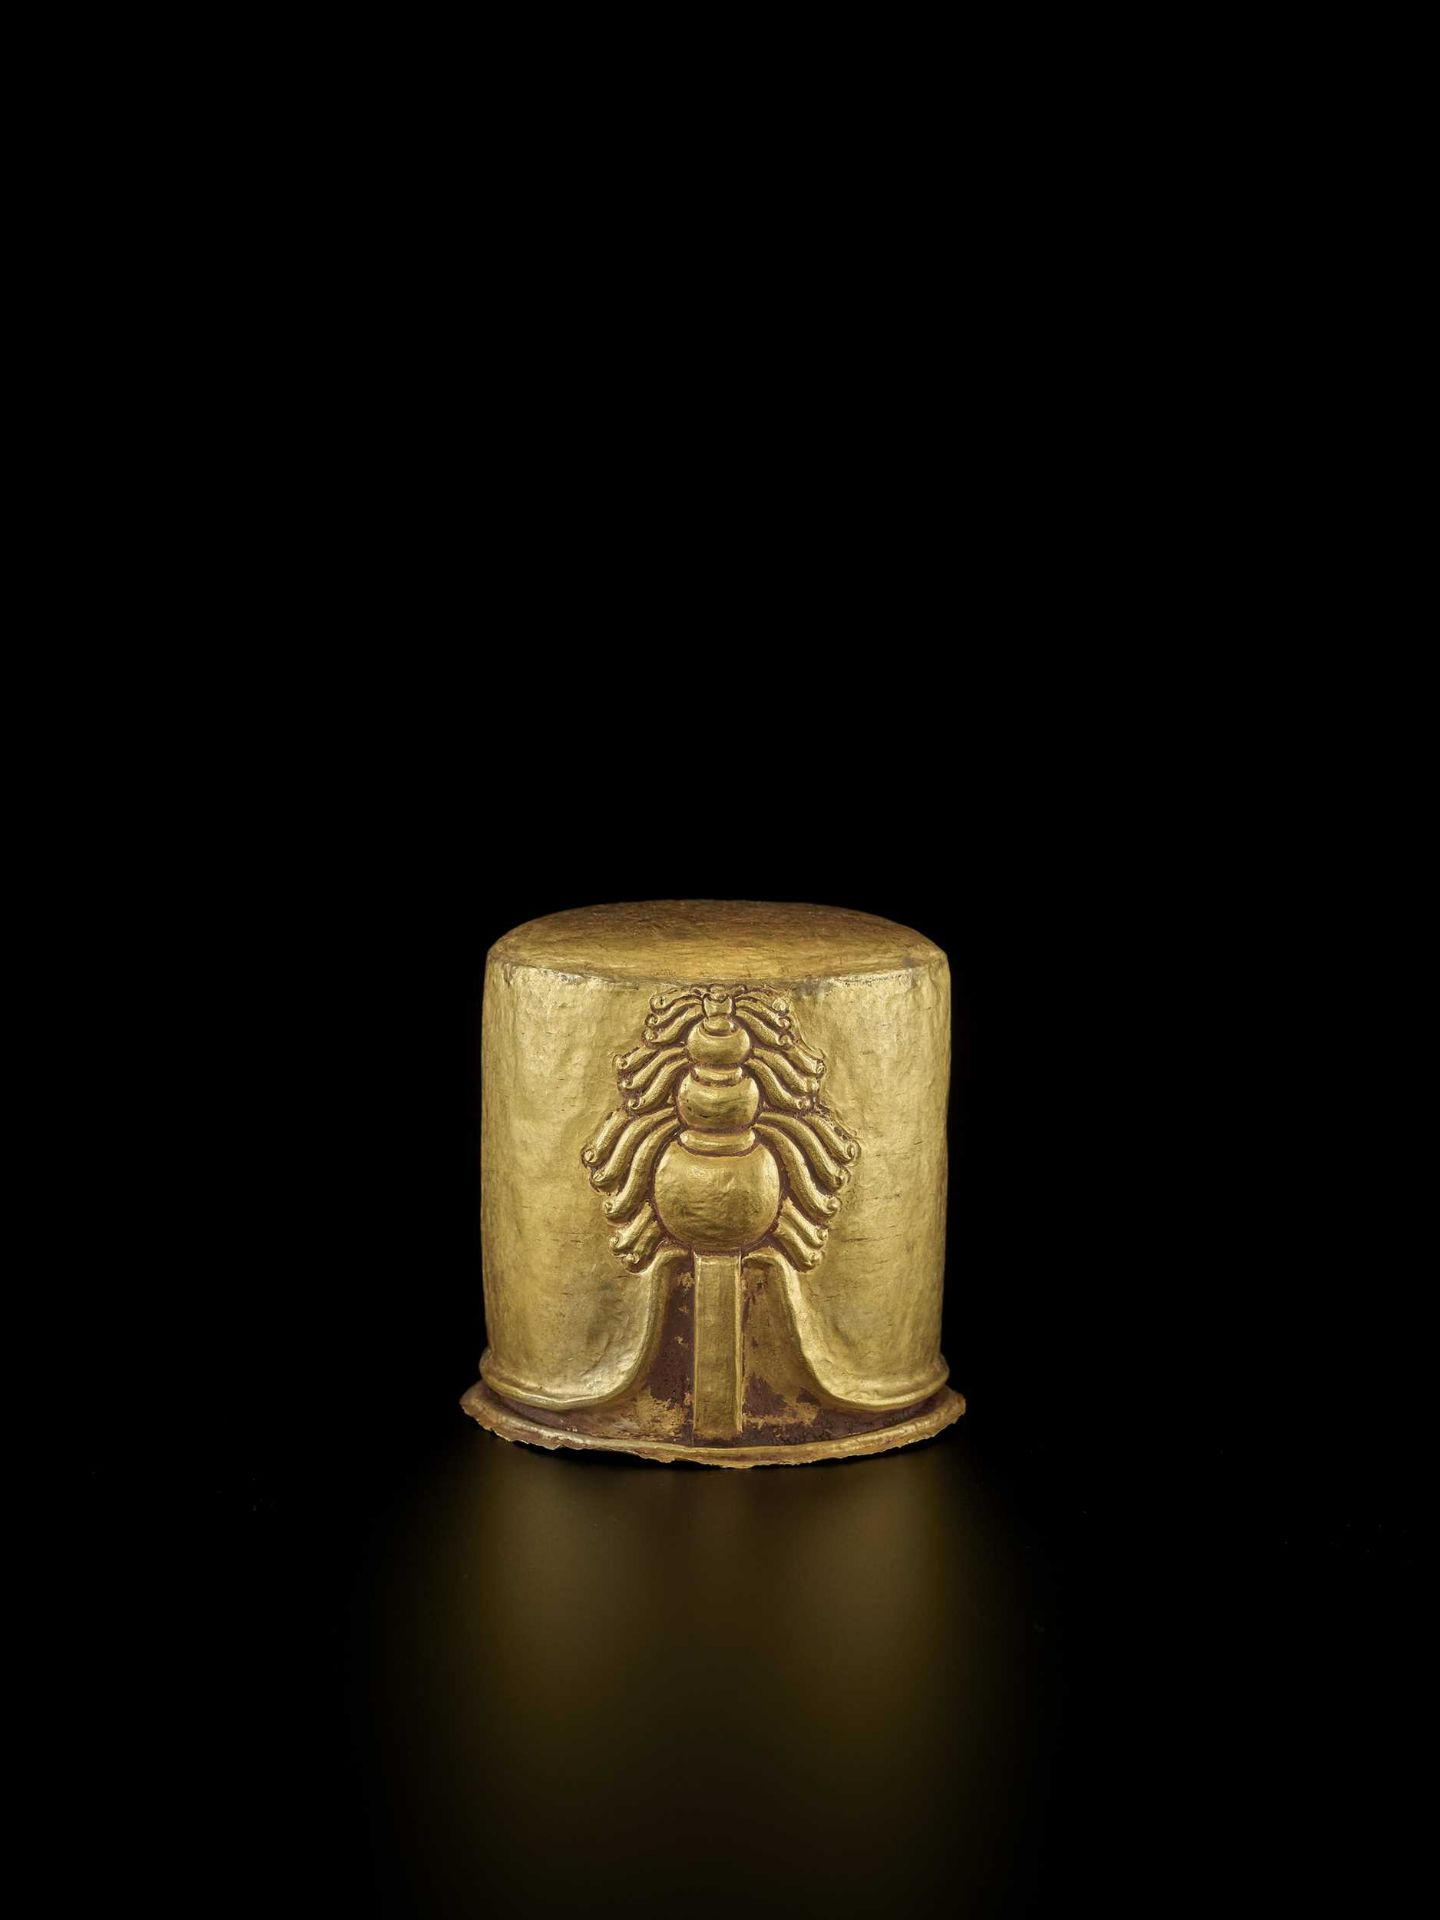 AN EXCEPTIONAL AND RARE CHAM GOLD REPOUSSÉ LINGAM WITH SHIVA'S LOCKS OF HAIR